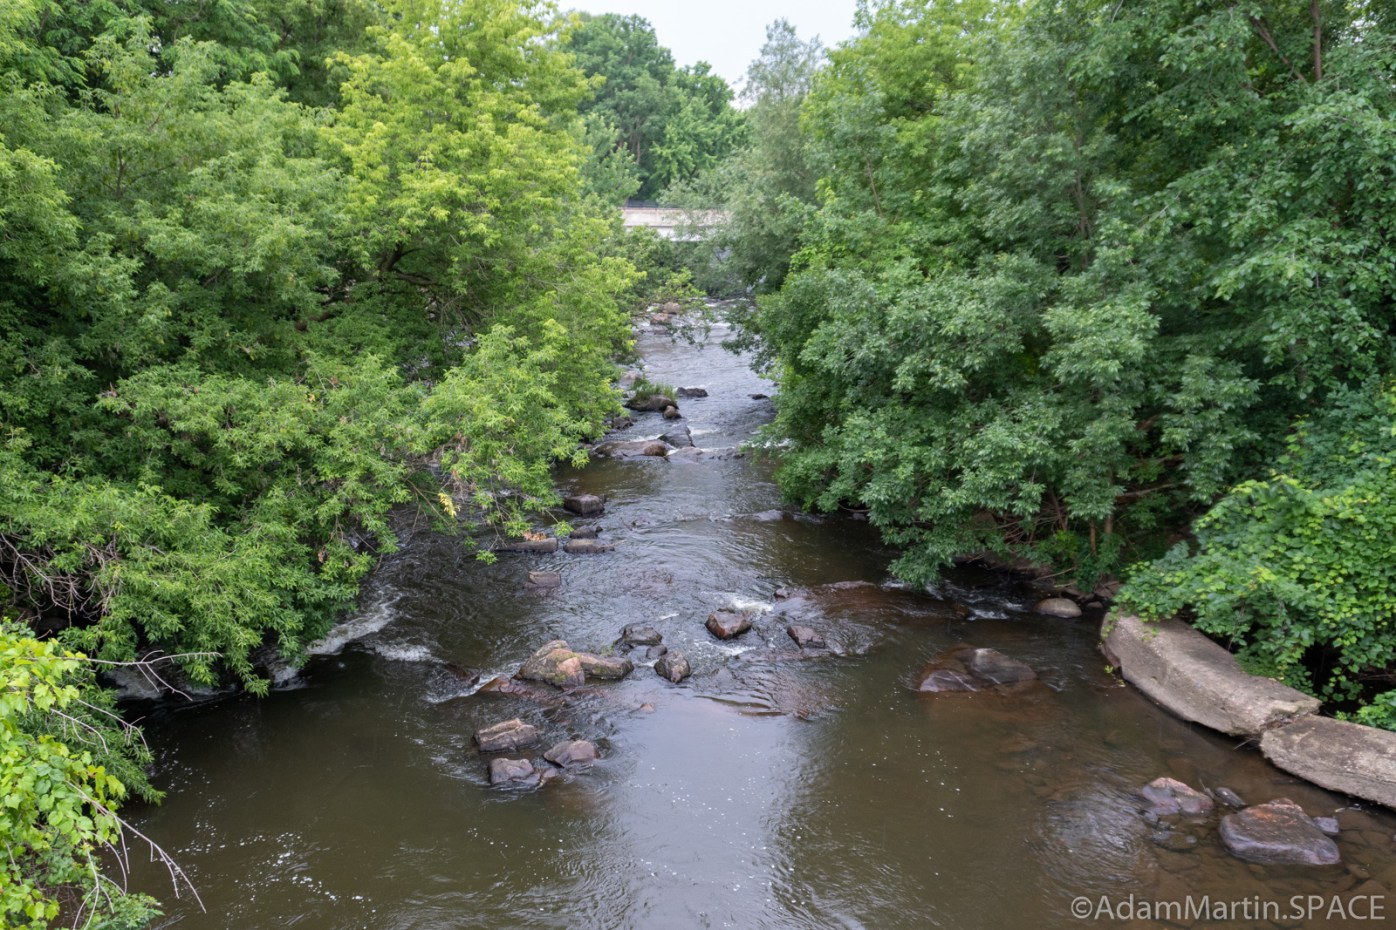 Duncan Creek Rapids - Downstream view from bridge at Columbia Street